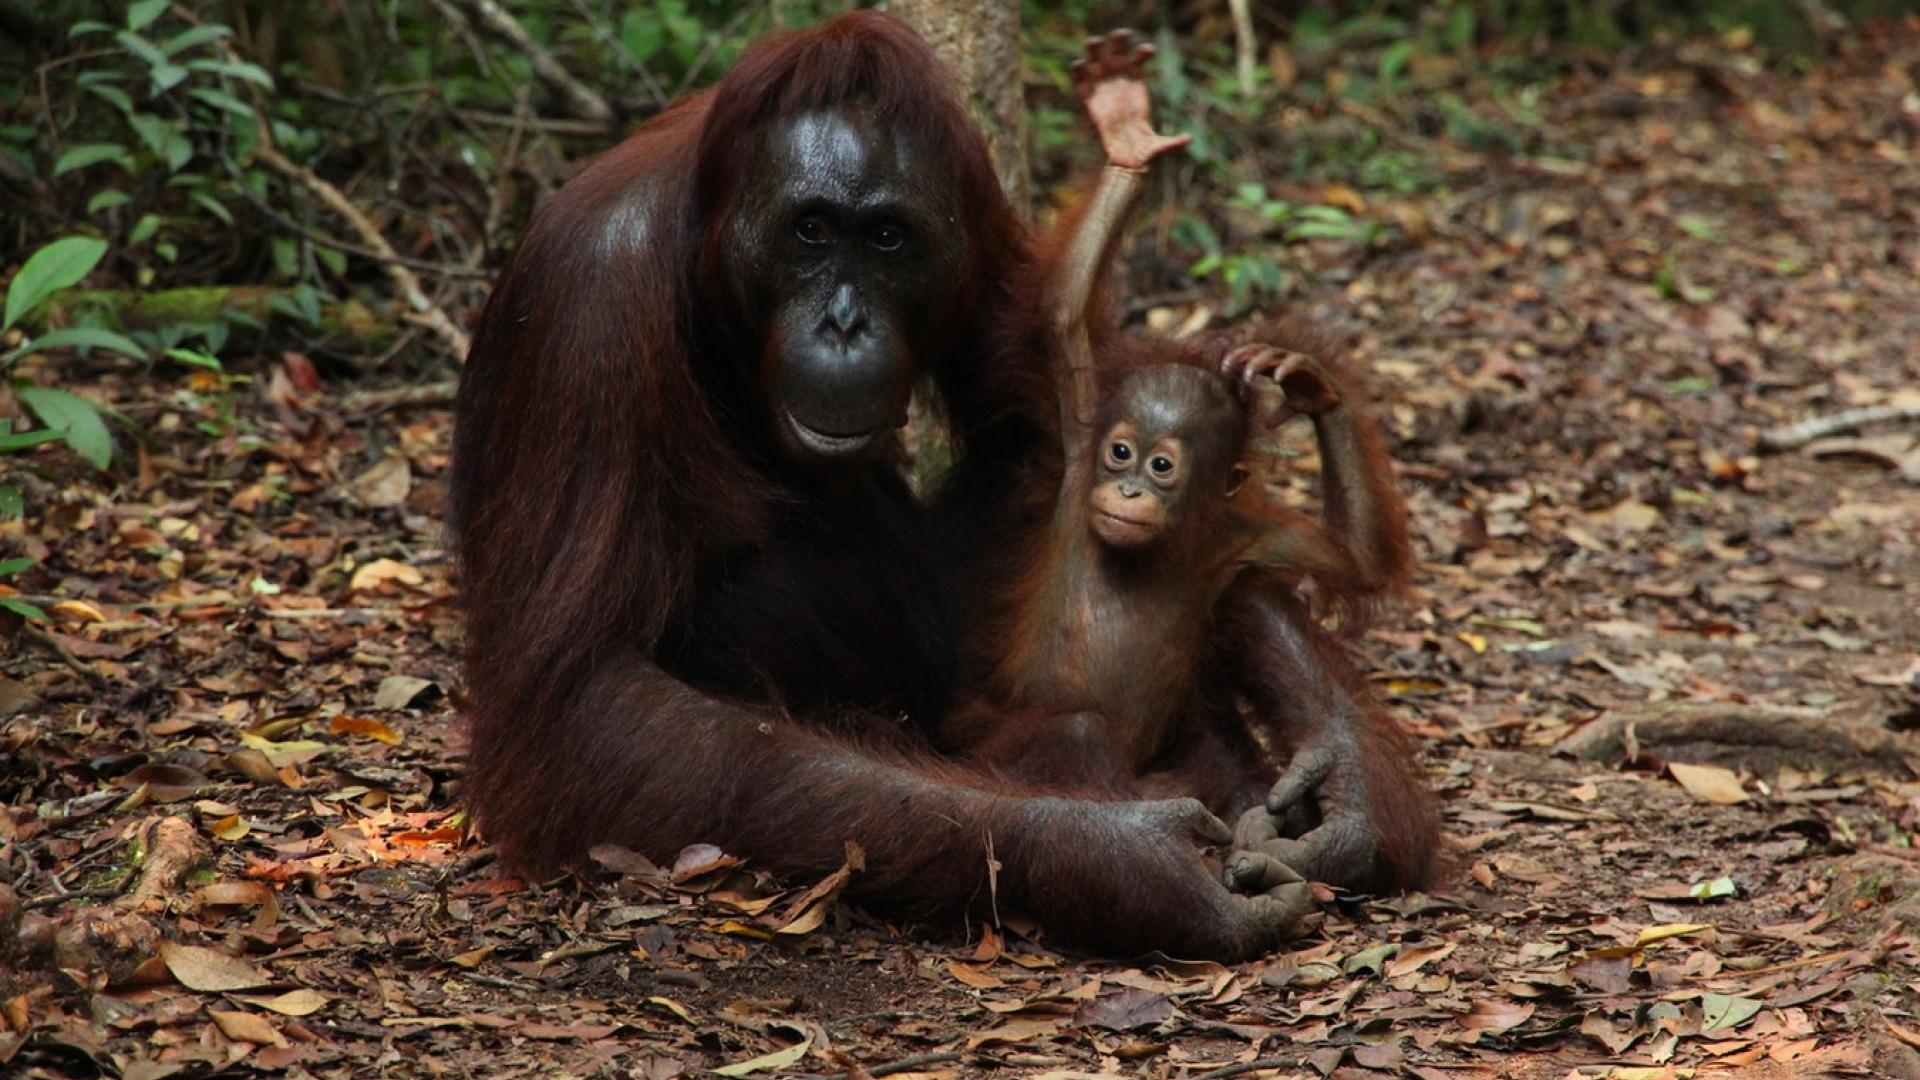 Photo shows orangutan mother and baby